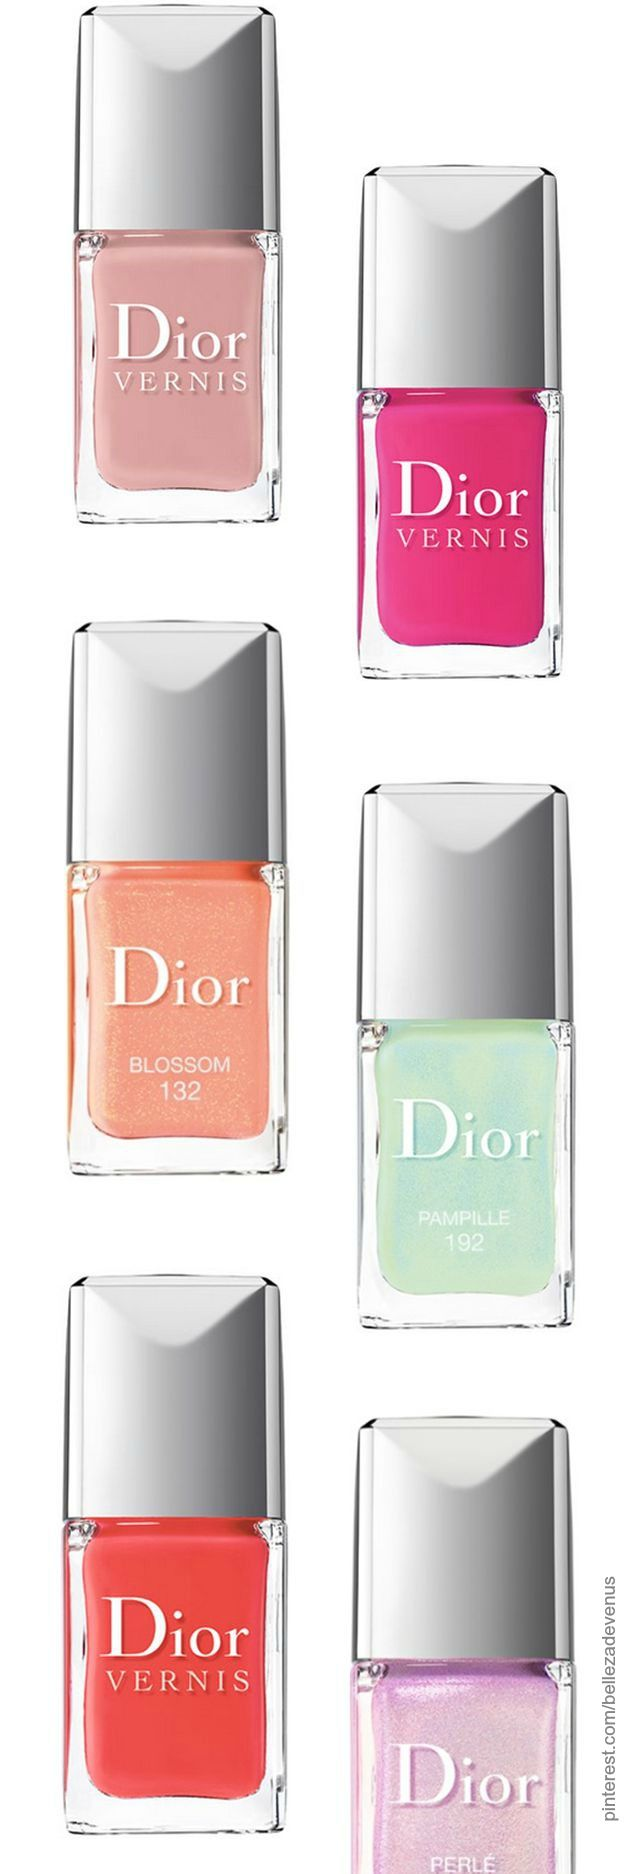 72 besten Dior Bilder auf Pinterest | Pflegeprodukte, Beauty make-up ...